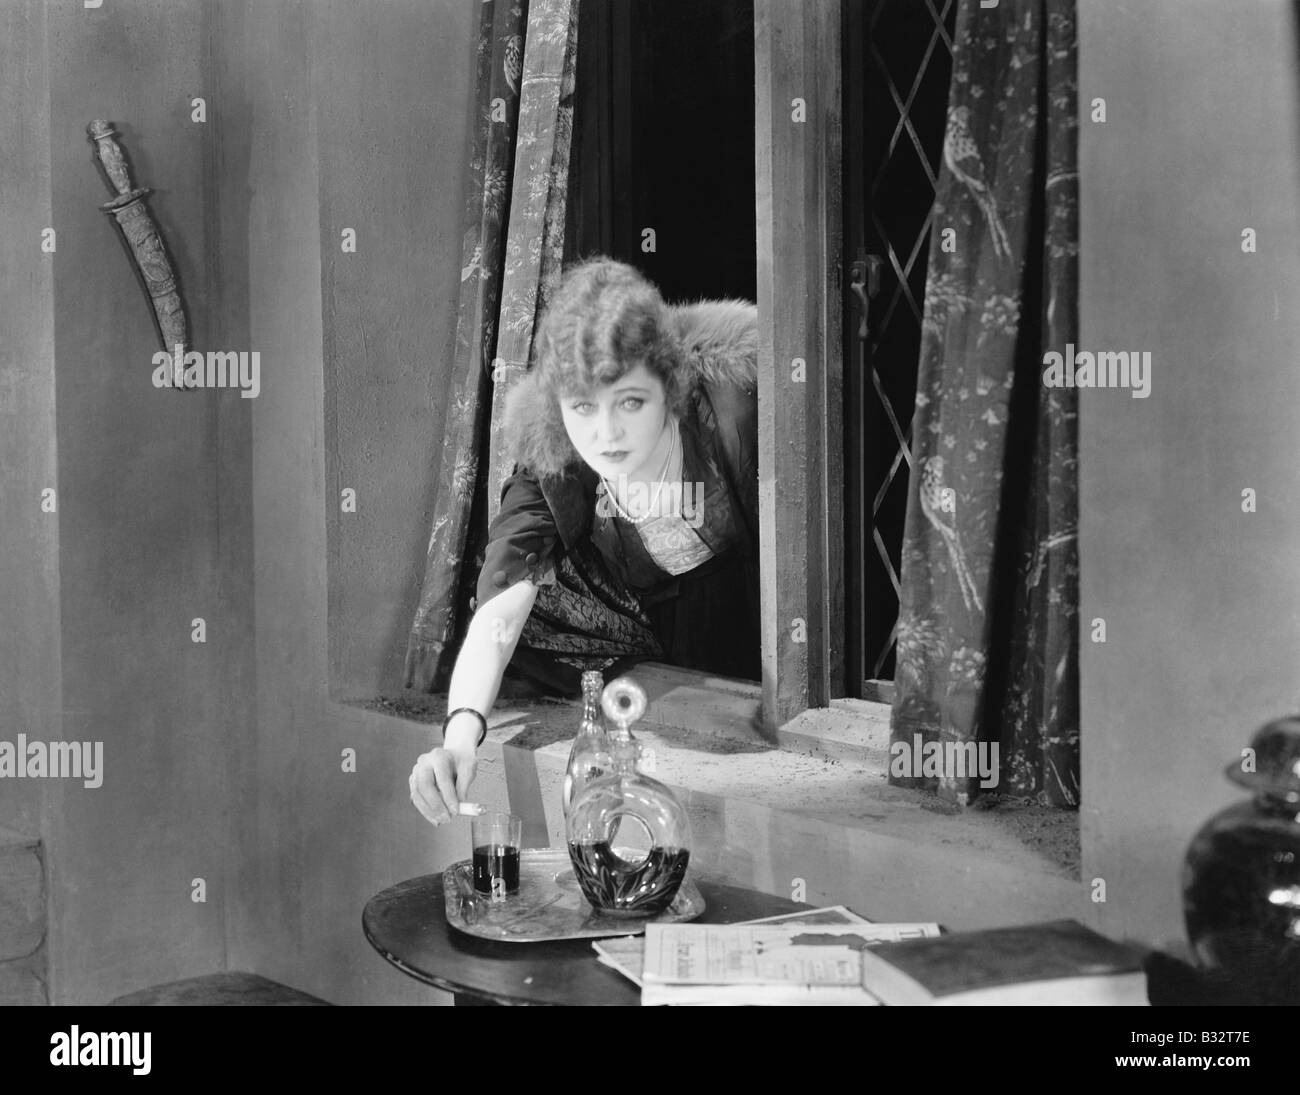 Portrait of a young woman reaching through a window and pouring poison into a glass - Stock Image